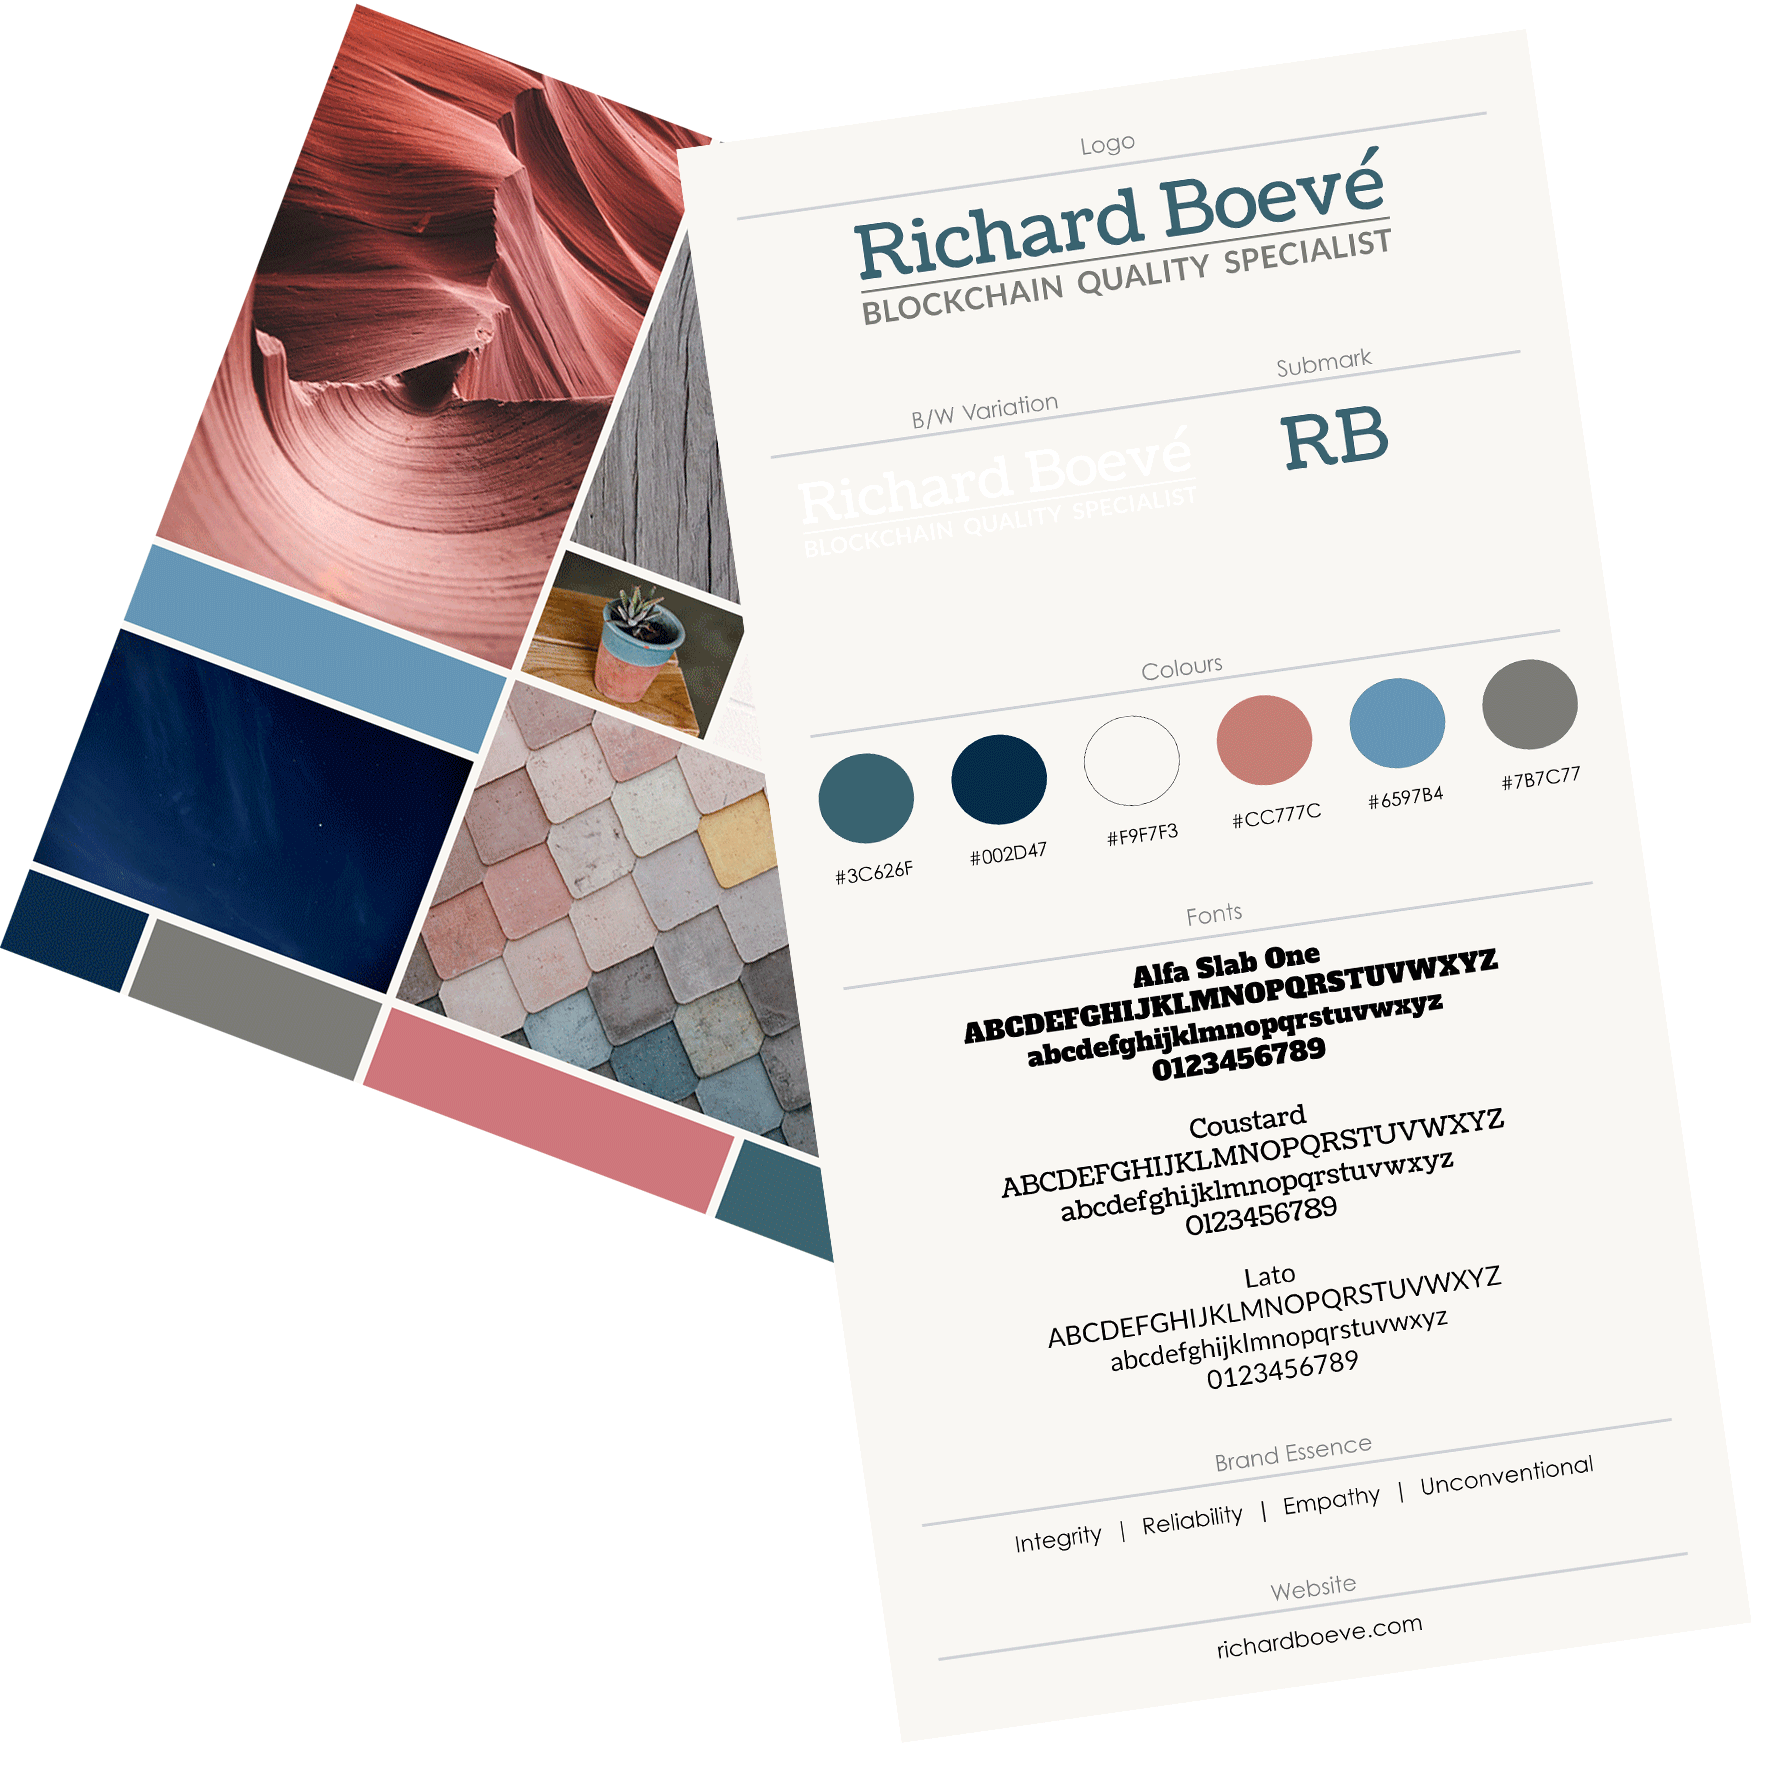 Brand Style - After a thorough review of Richard's unique strengths and values, where he wants to take his career and the competition in his field, we helped him clarify his unique brand essence that would both feel authentic and help him stand out.To capture Richard's brand essence visually, we developed a cool, professional color palette along with a combination of unconventional but structured fonts.